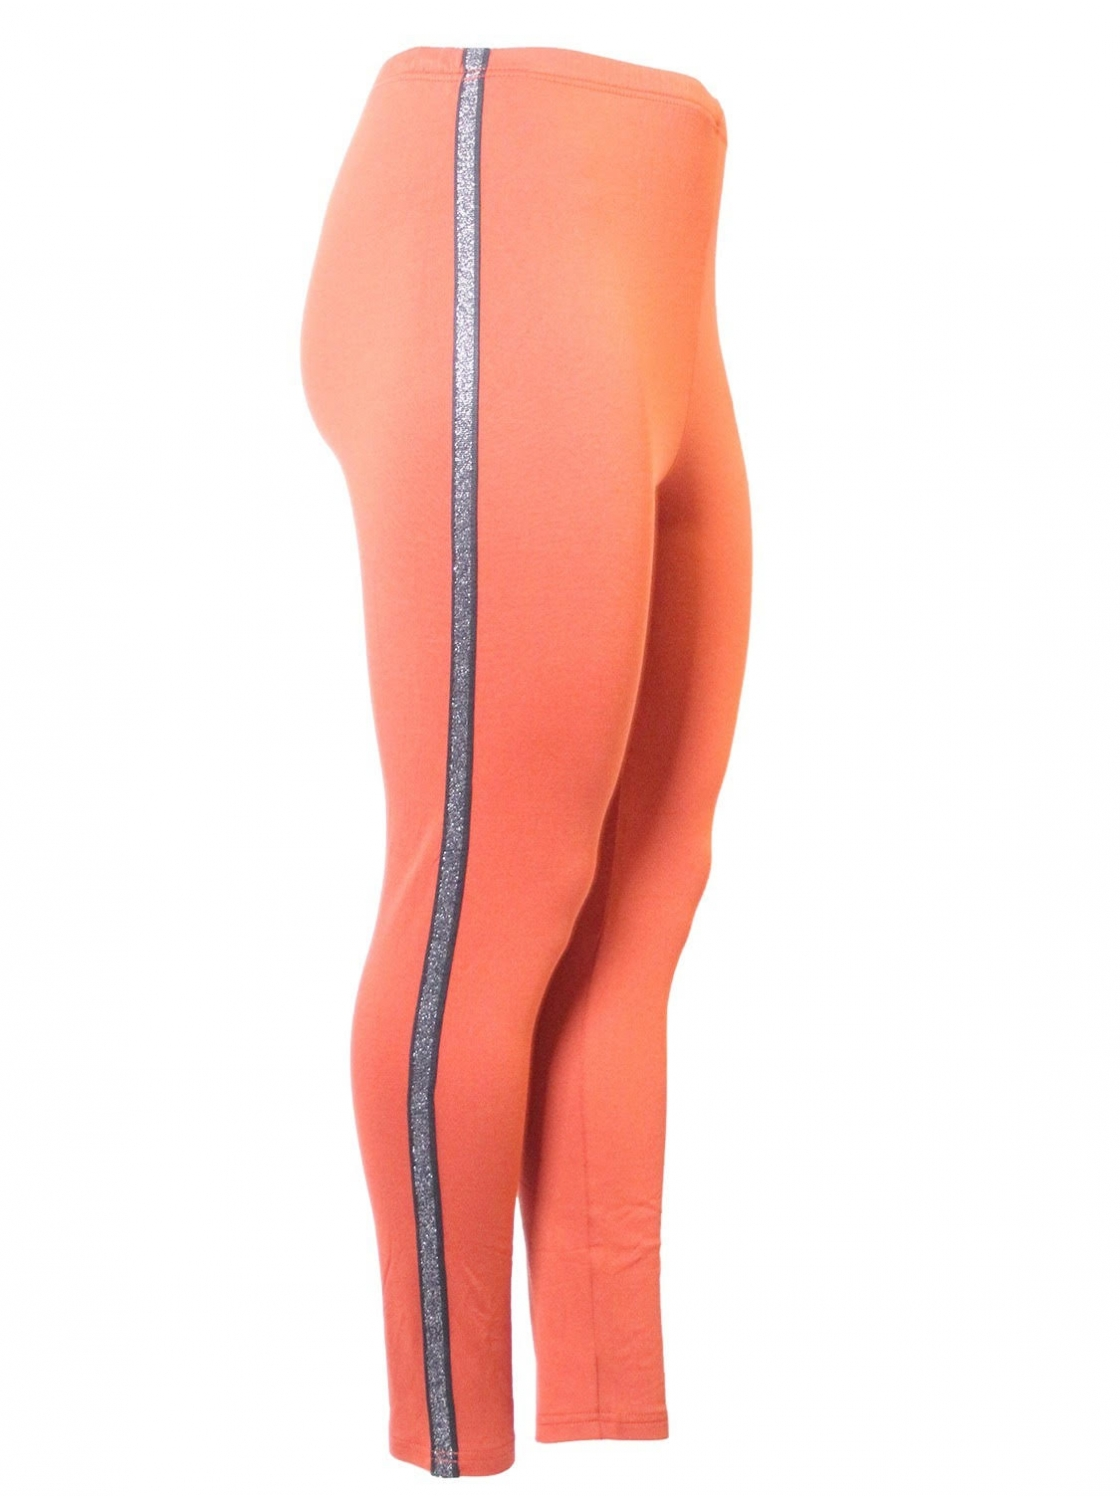 Legging orange, bande argentée